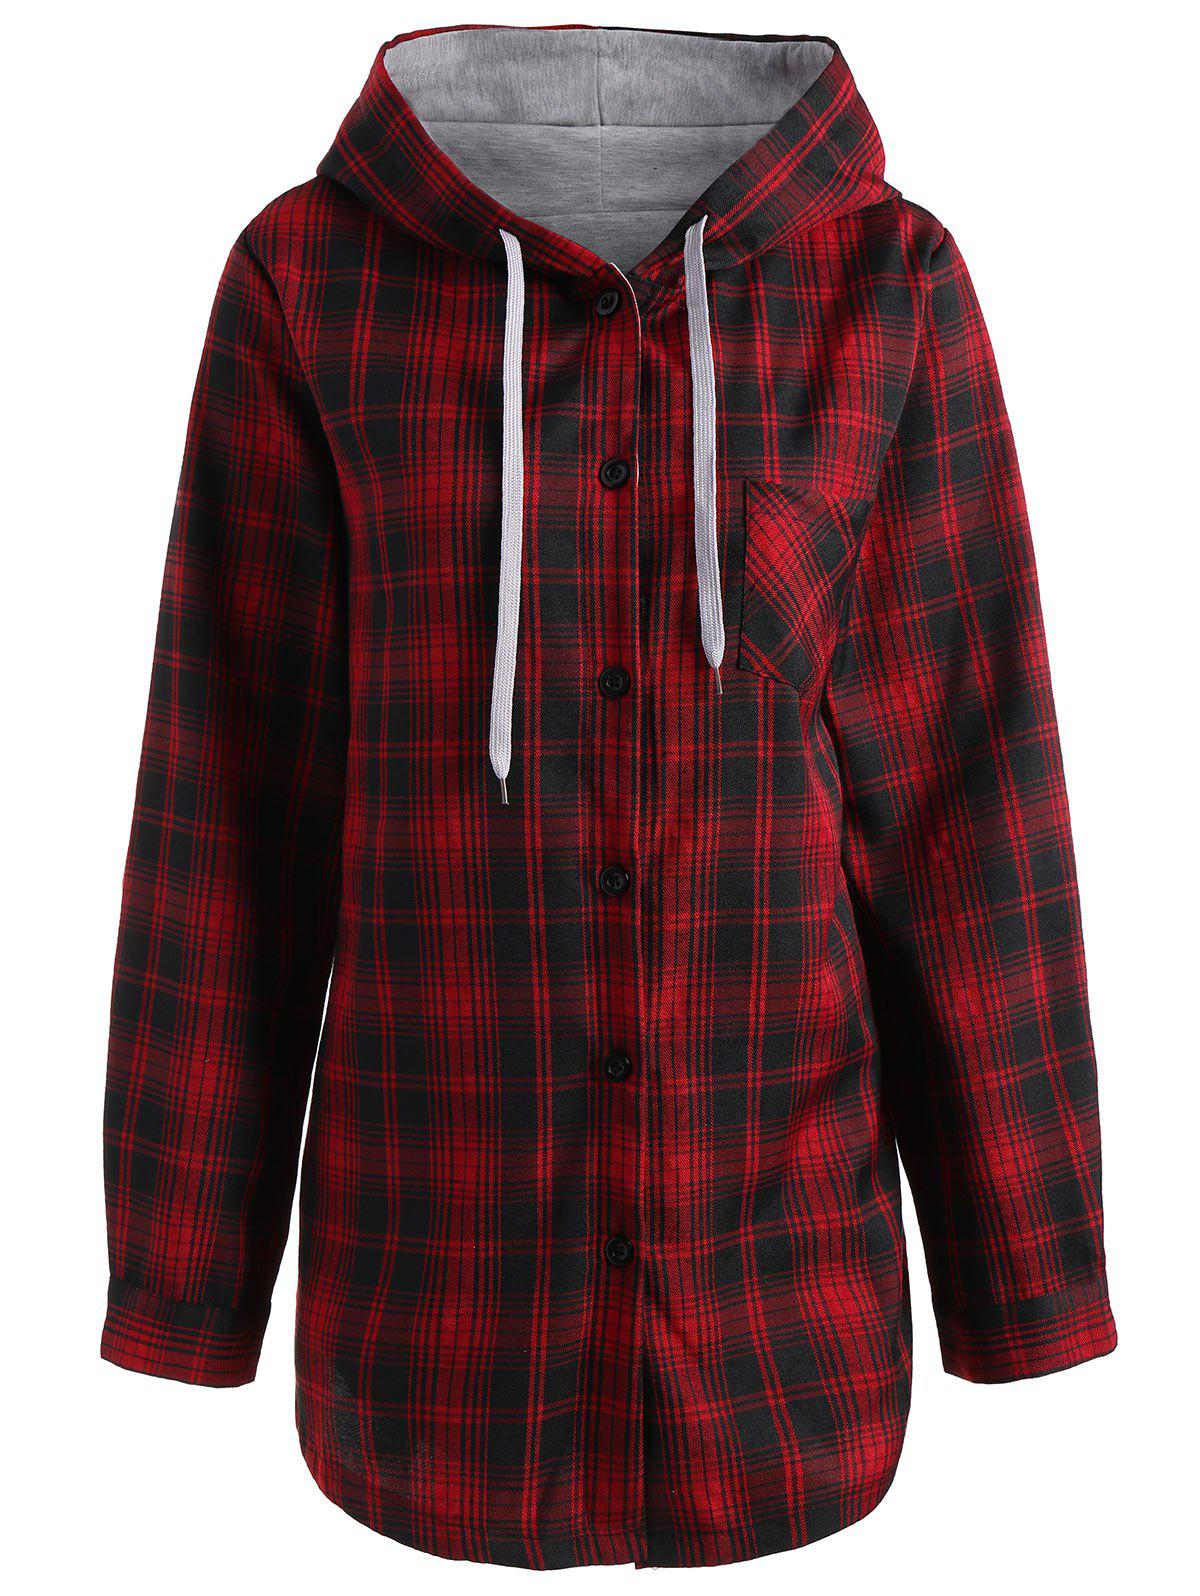 Button Up Plus Size Plaid Hooded CoatWOMEN<br><br>Size: 4XL; Color: RED; Clothes Type: Others; Material: Nylon,Polyester; Type: Wide-waisted; Shirt Length: Long; Sleeve Length: Full; Collar: Hooded; Pattern Type: Plaid; Style: Casual; Season: Fall,Winter; Weight: 0.6300kg; Package Contents: 1 x Coat;